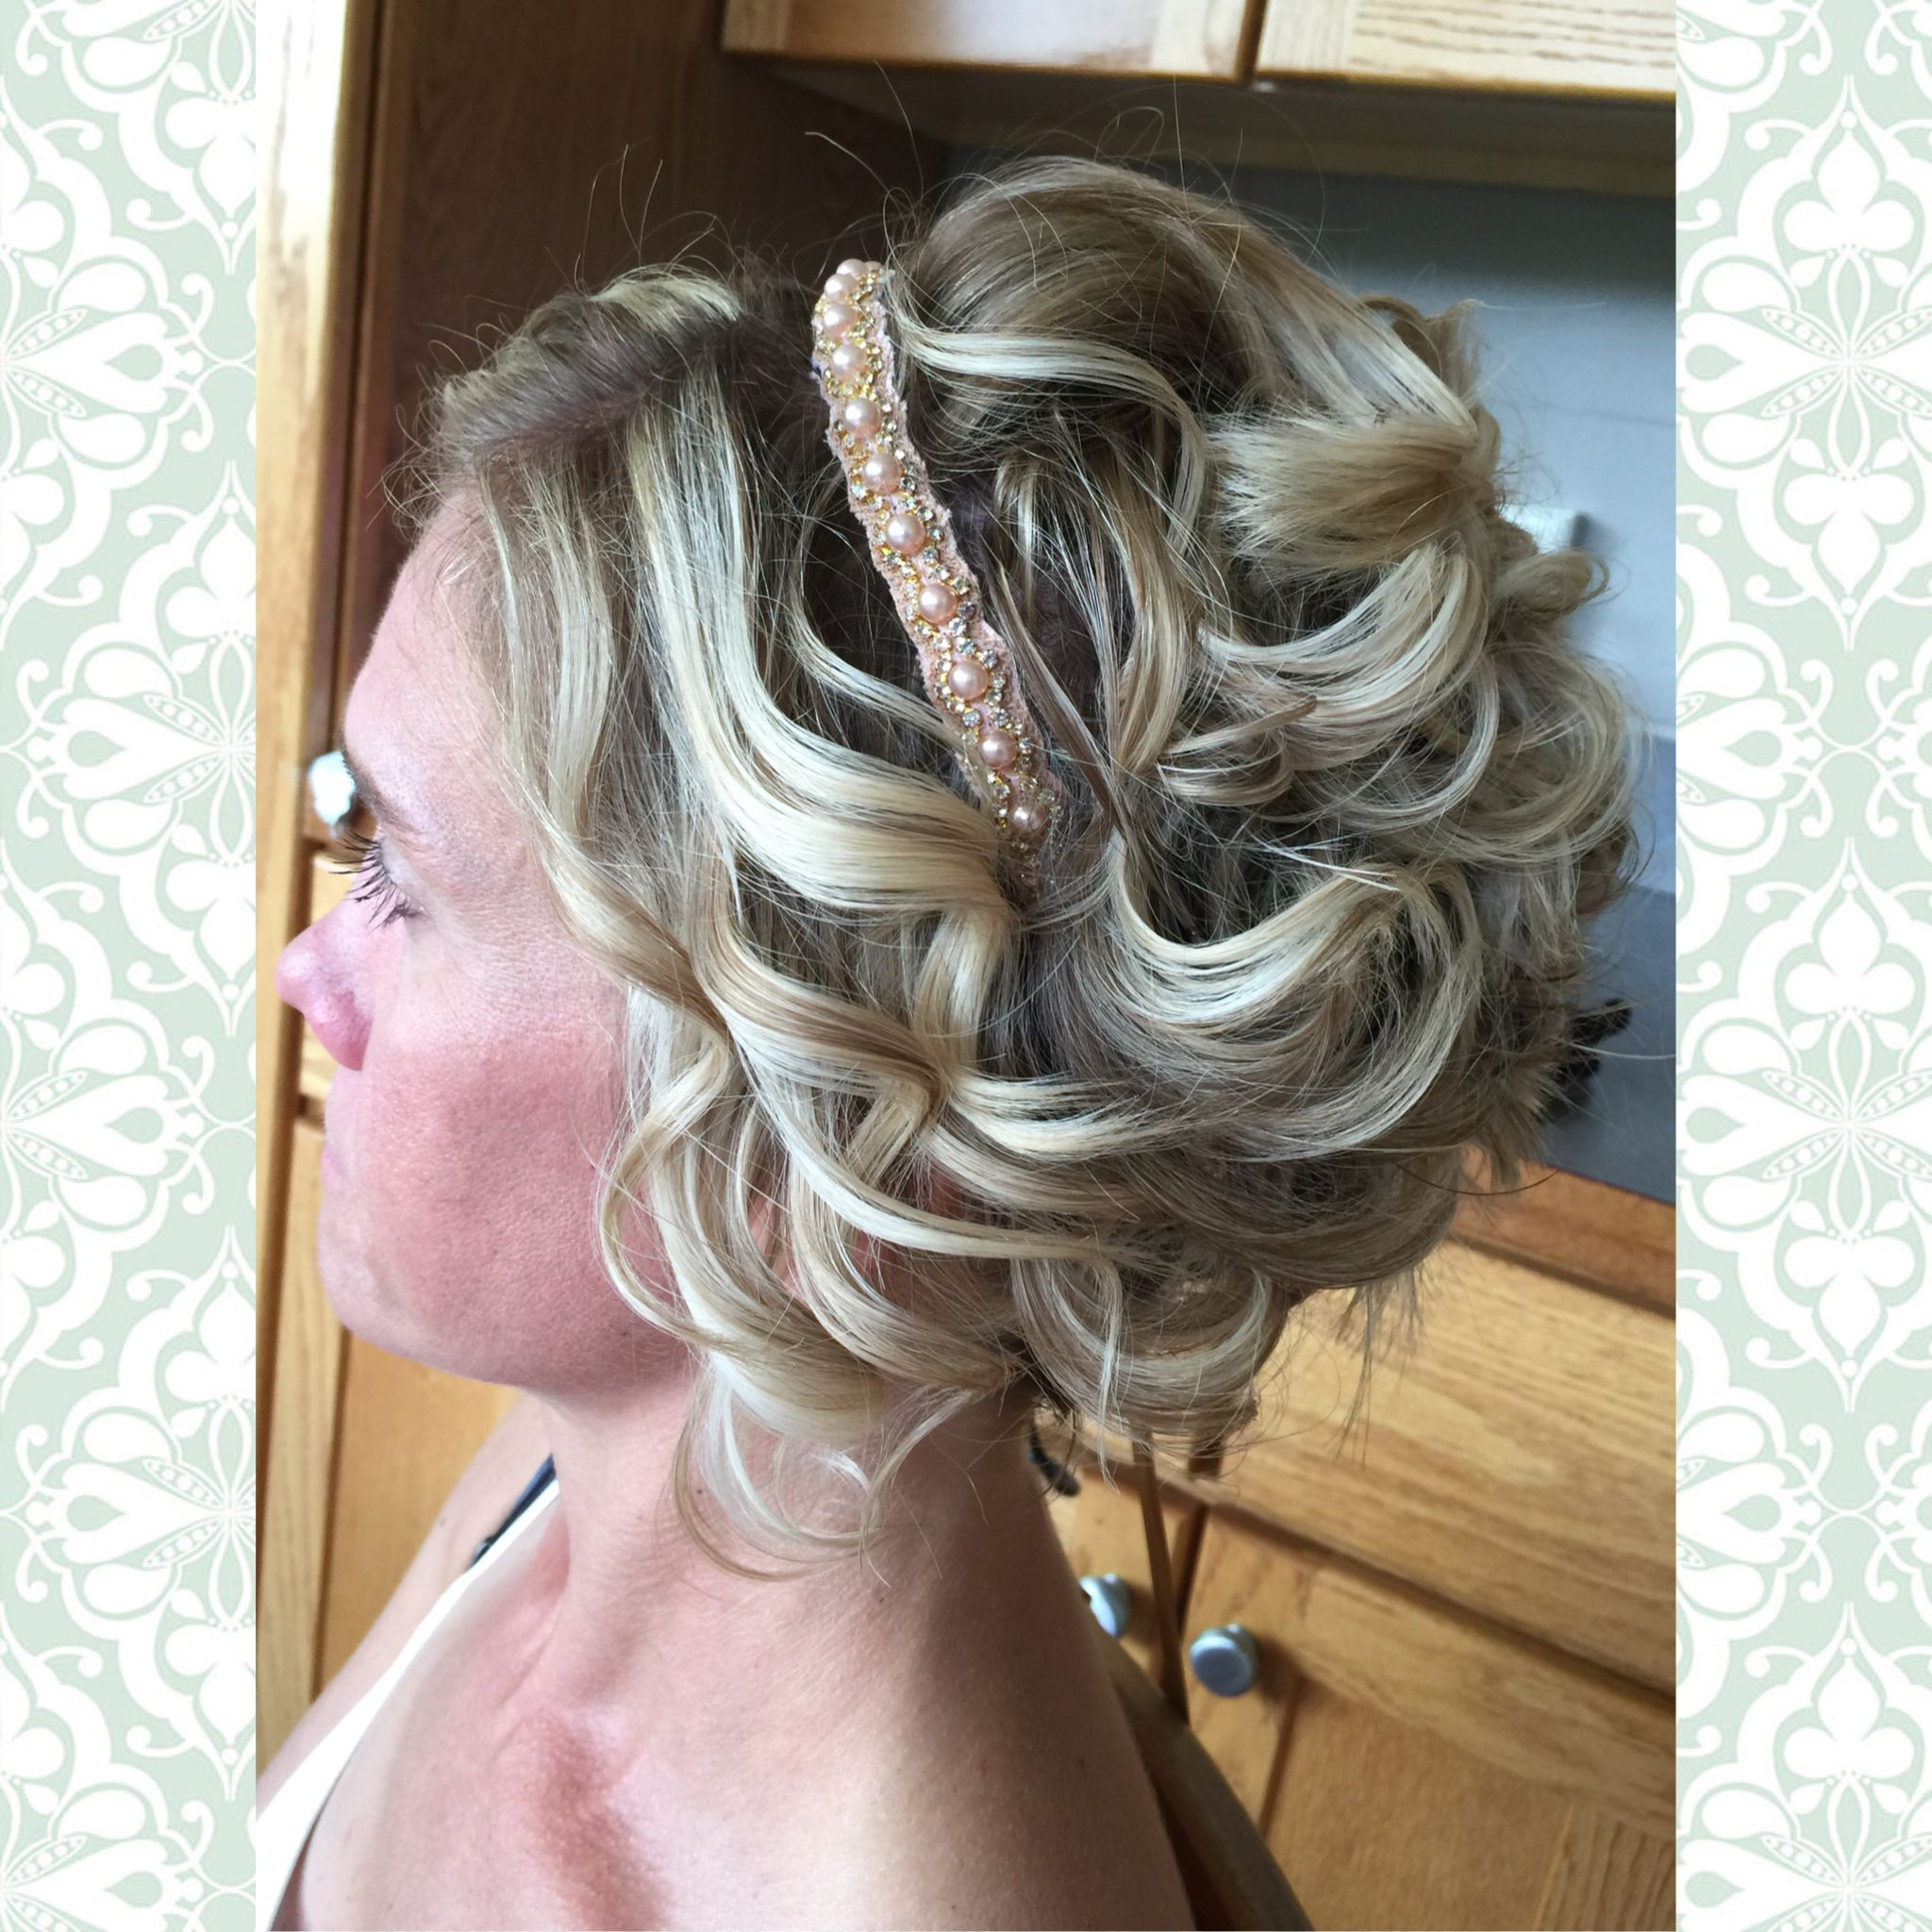 pin by kelley finley on hair | short bridal hair, wedding